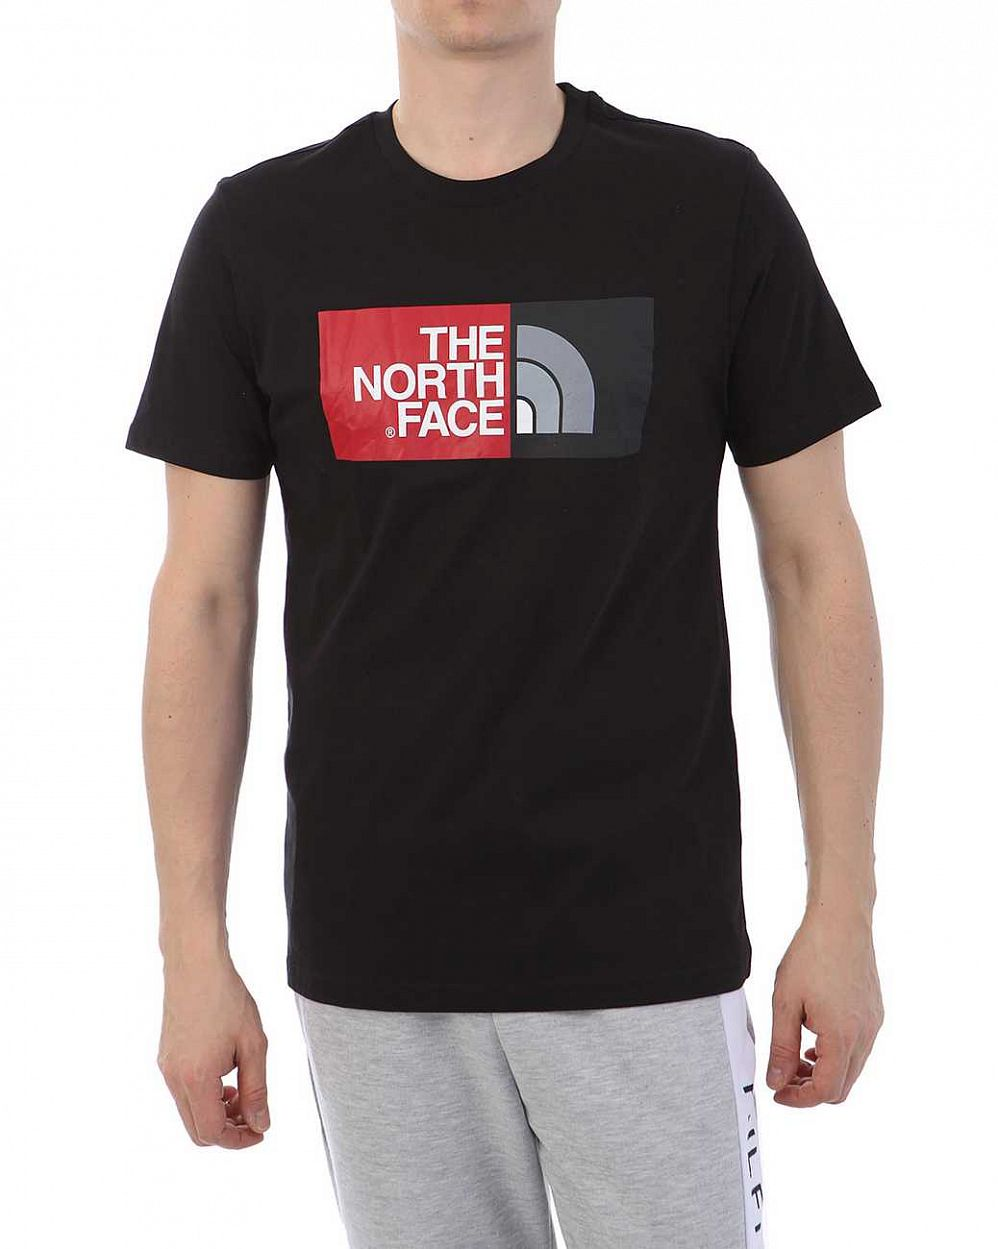 Футболка The North Face 000035527 Black Red отзывы